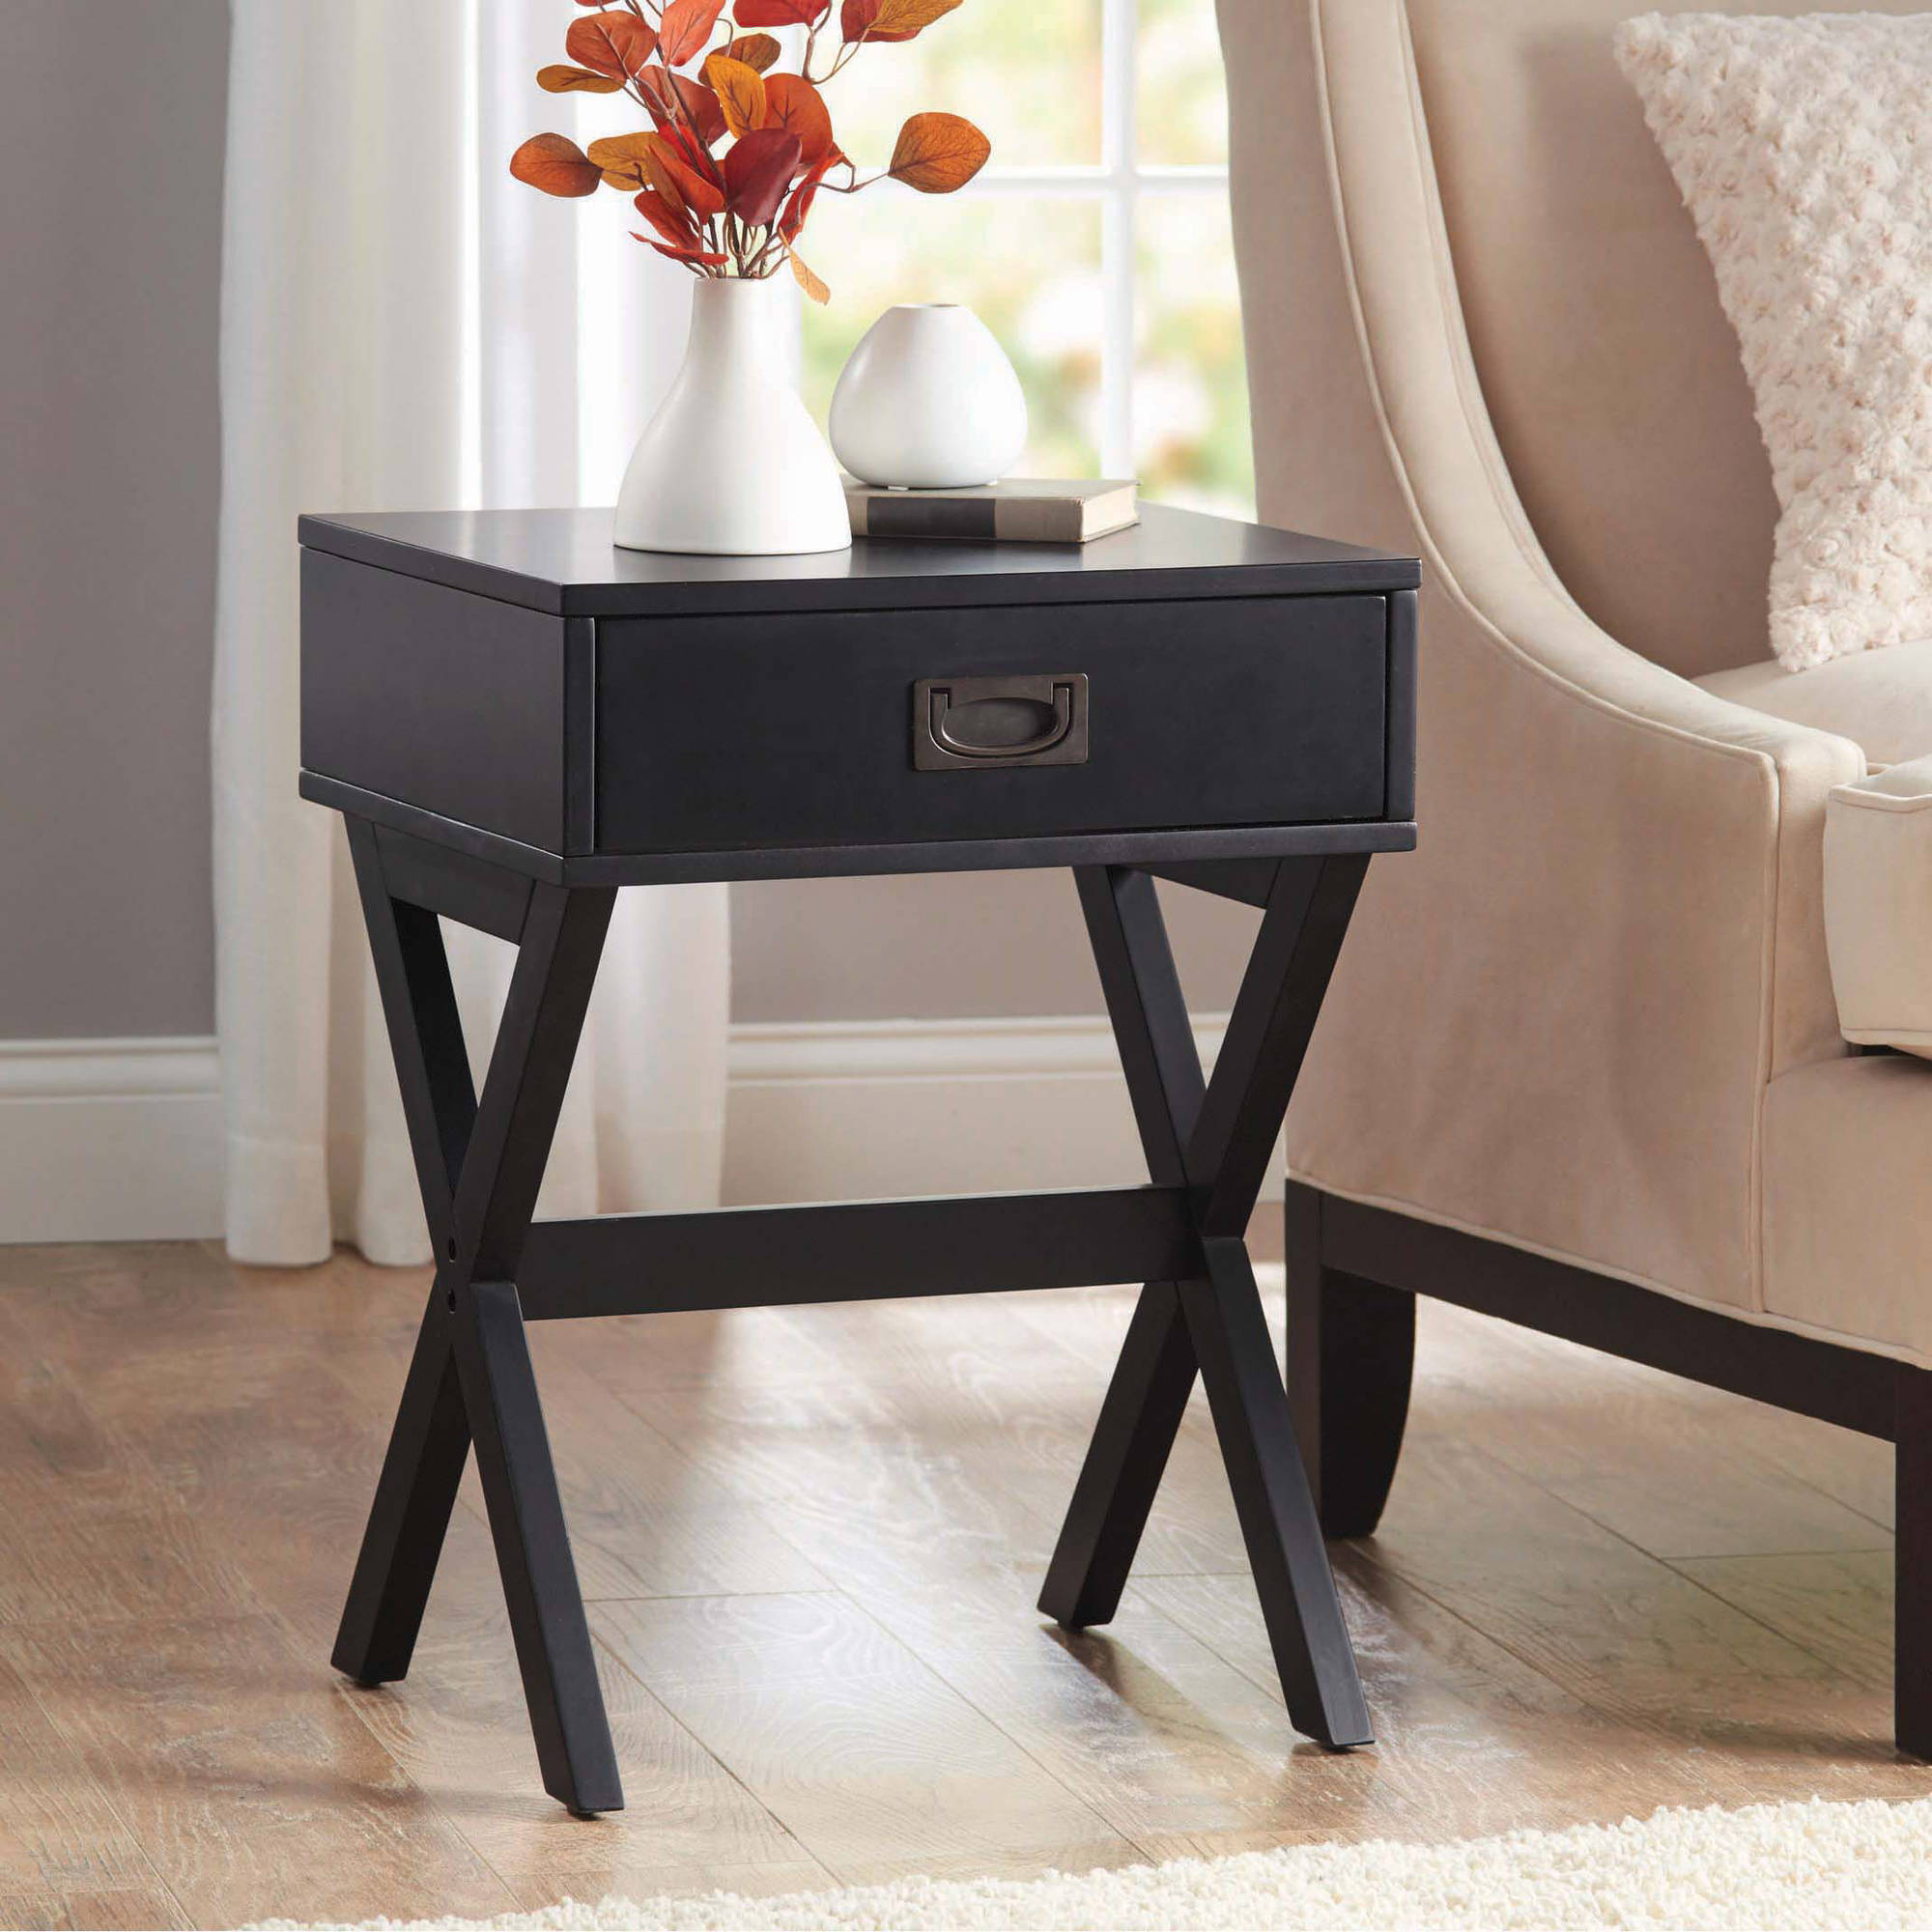 better homes gardens leg accent table with drawer multiple black colors stained glass light metal chair legs keter cool bar drink storage and white marble bedside outdoor coffee